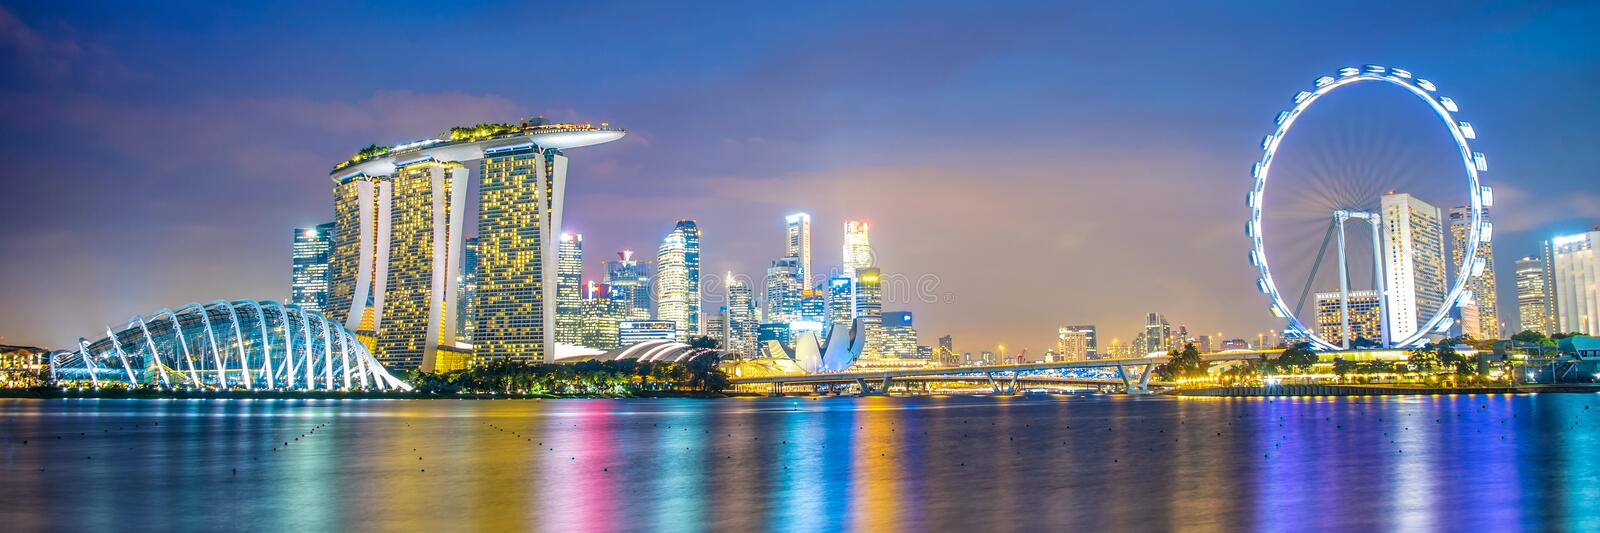 Panorama of Singapore city skyline royalty free stock photos